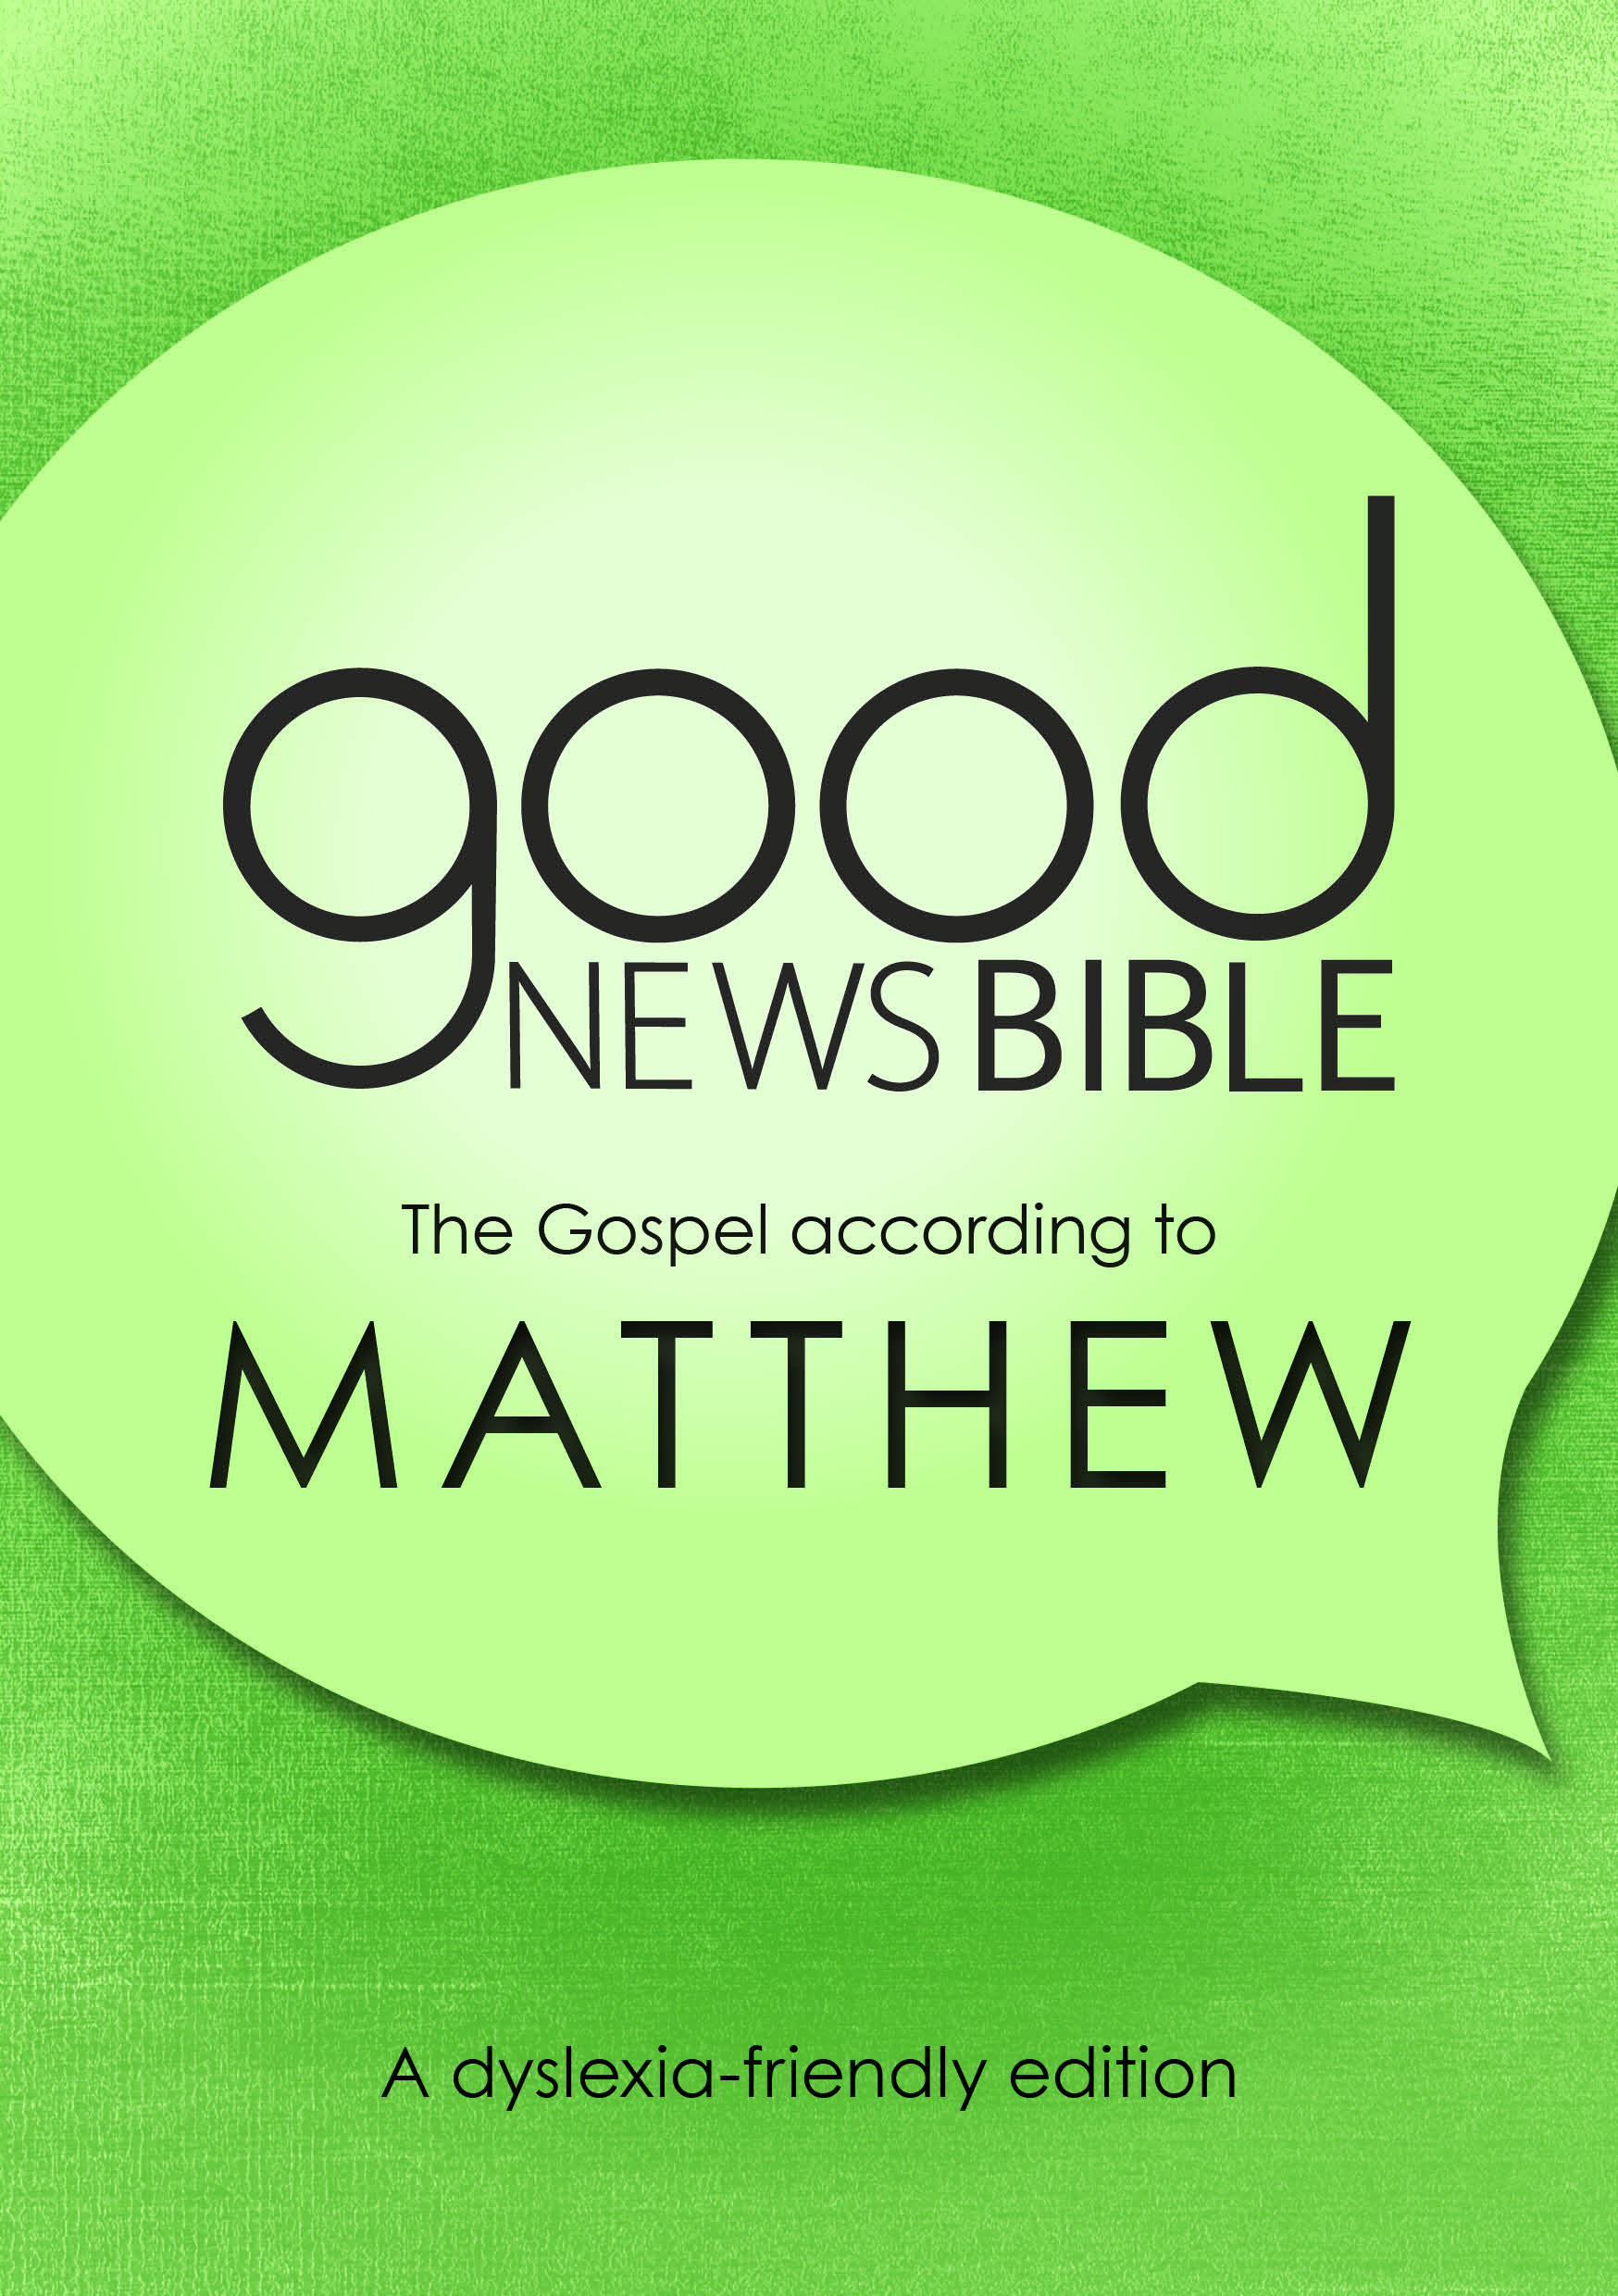 Good News Bible (GNB) Dyslexia-Friendly Gospel of Matthew